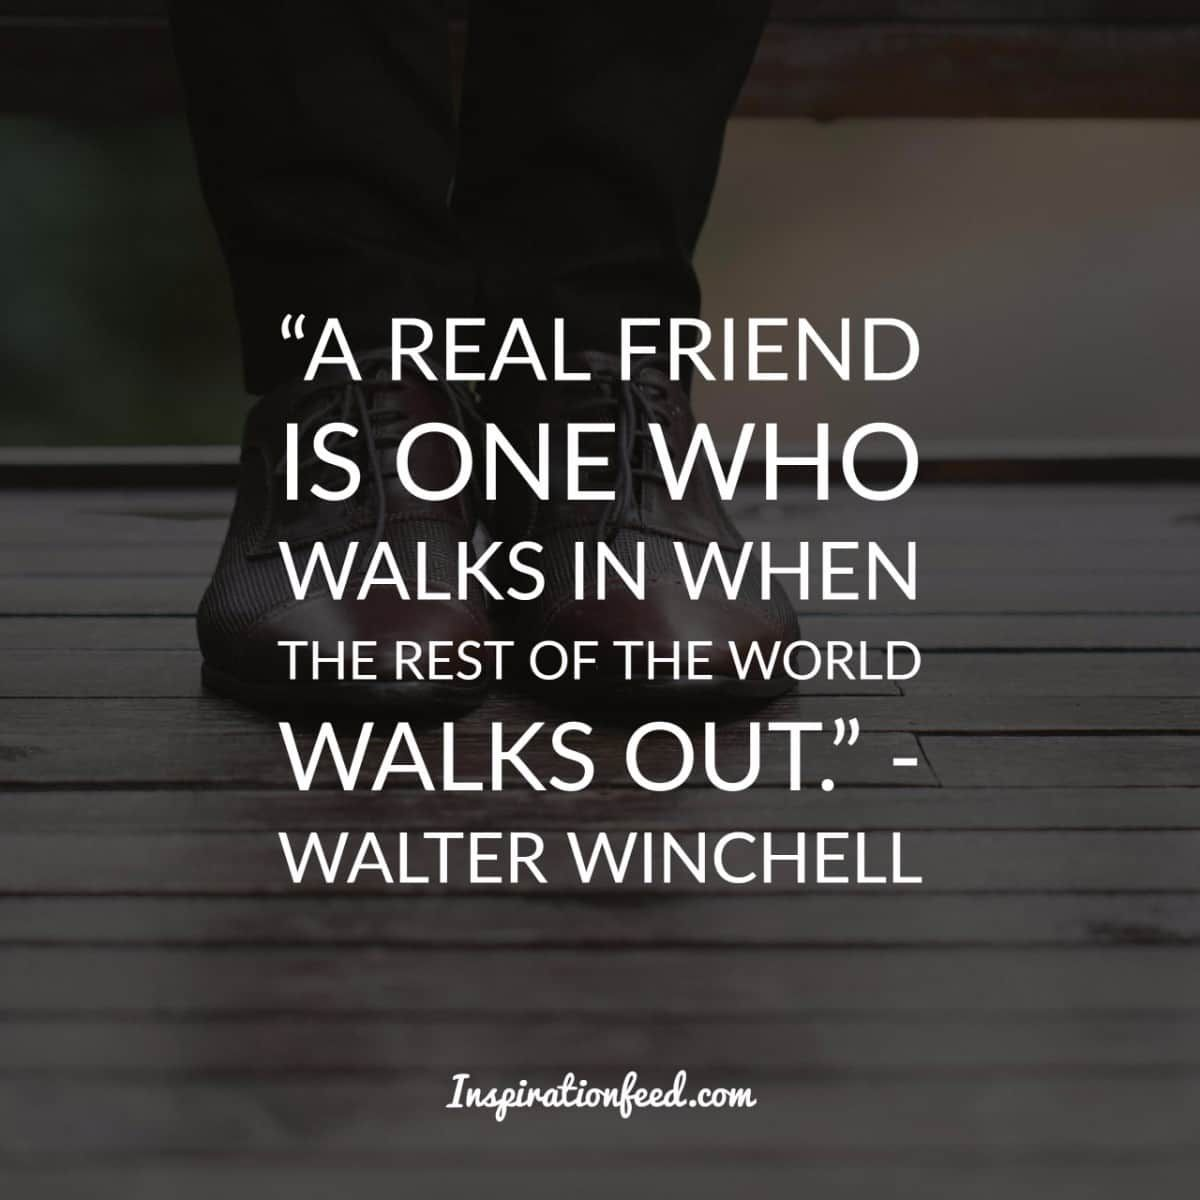 Funny Quote About Friendship 40 Friendship Quotes To Celebrate Your Friends  Friendship Quotes